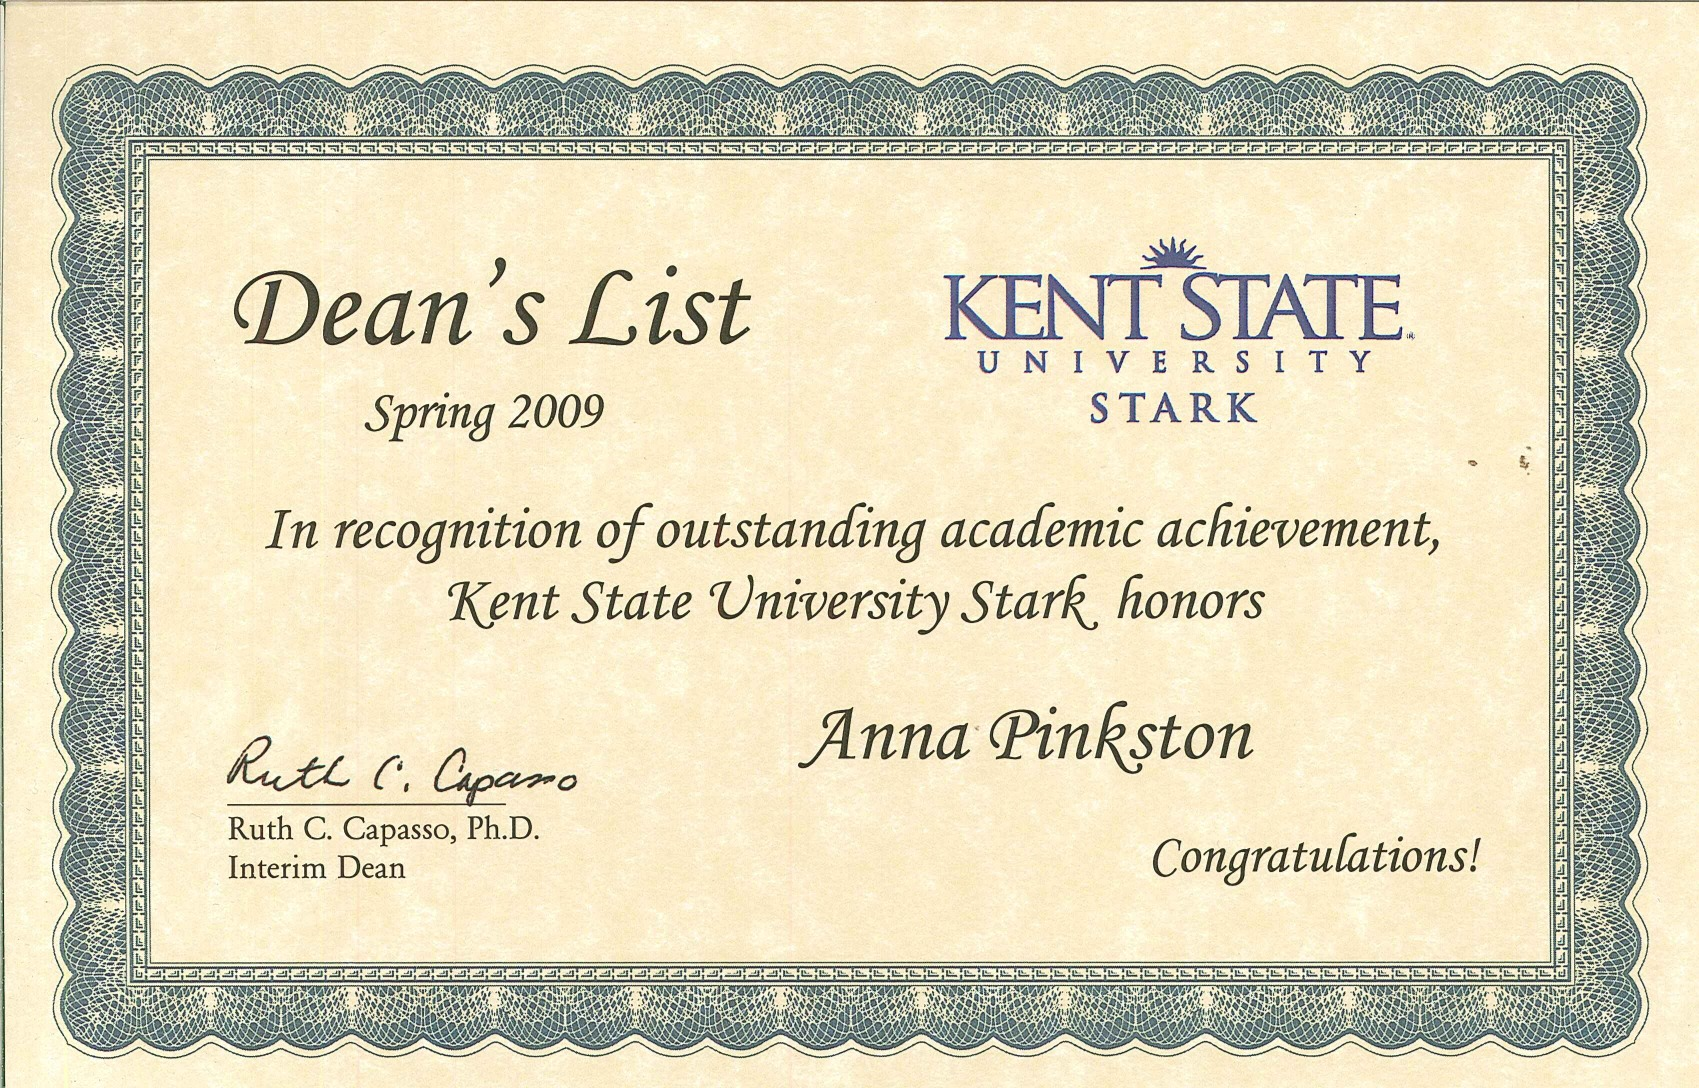 anna pinkston s professional development kent state university at stark certificate of leadership completed seven sessions basic computer skills resume - Leadership Skills For Resume